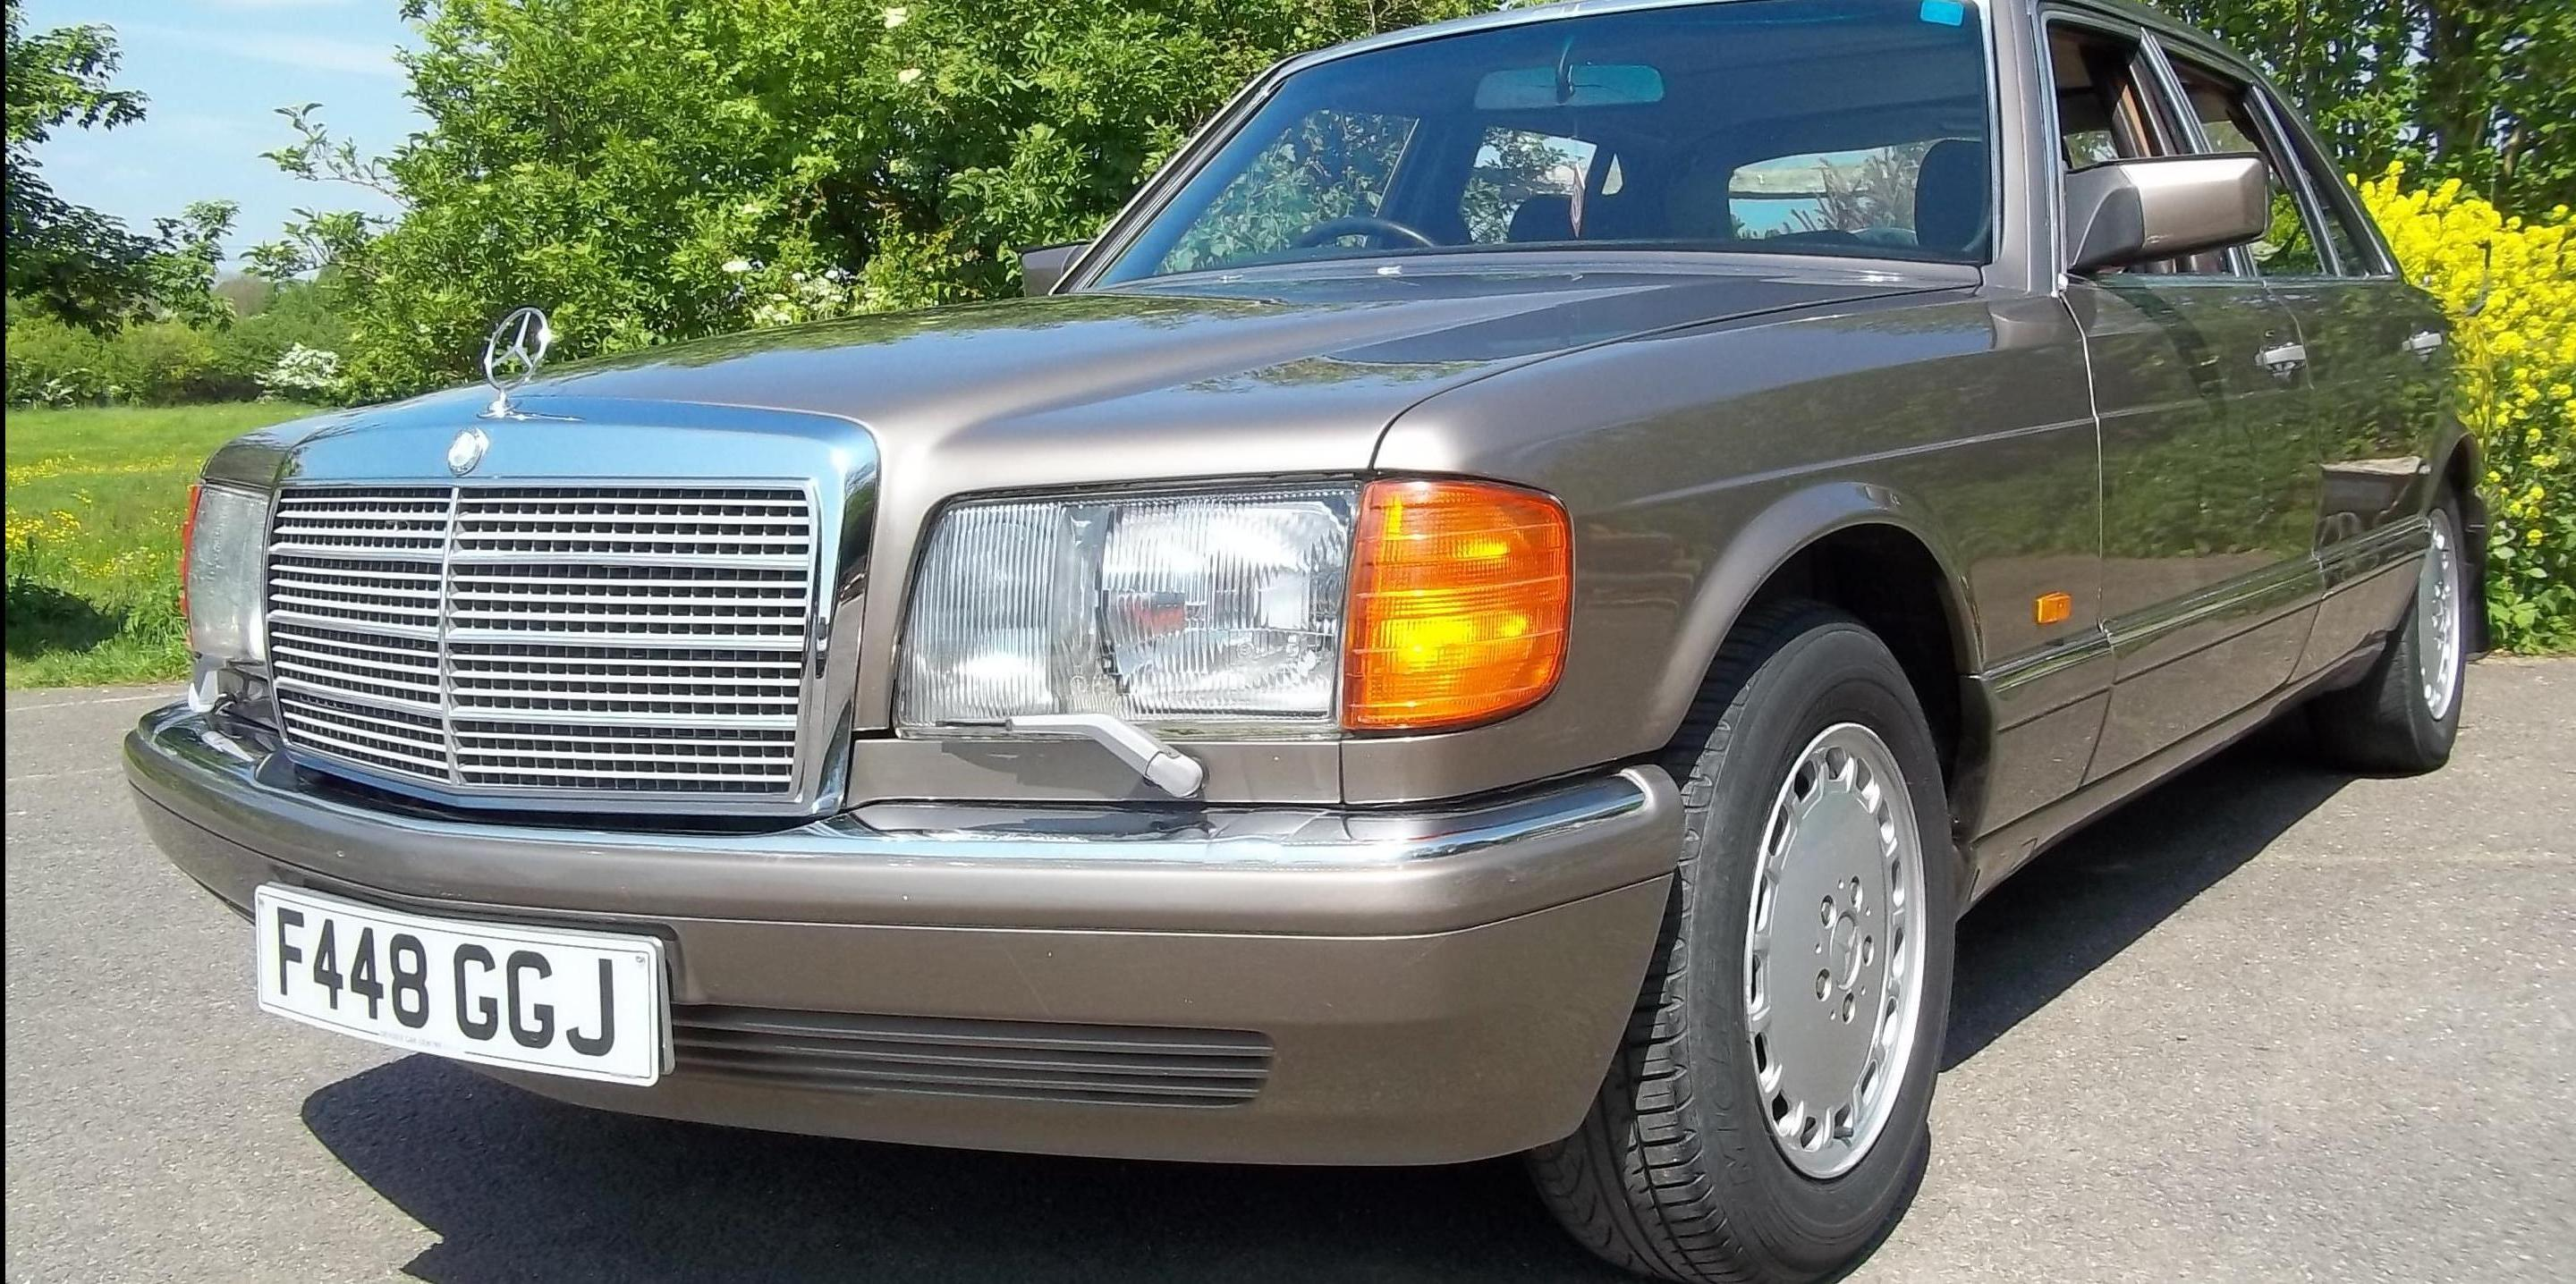 Goodoldboy 1988 Mercedes-Benz 420SEL